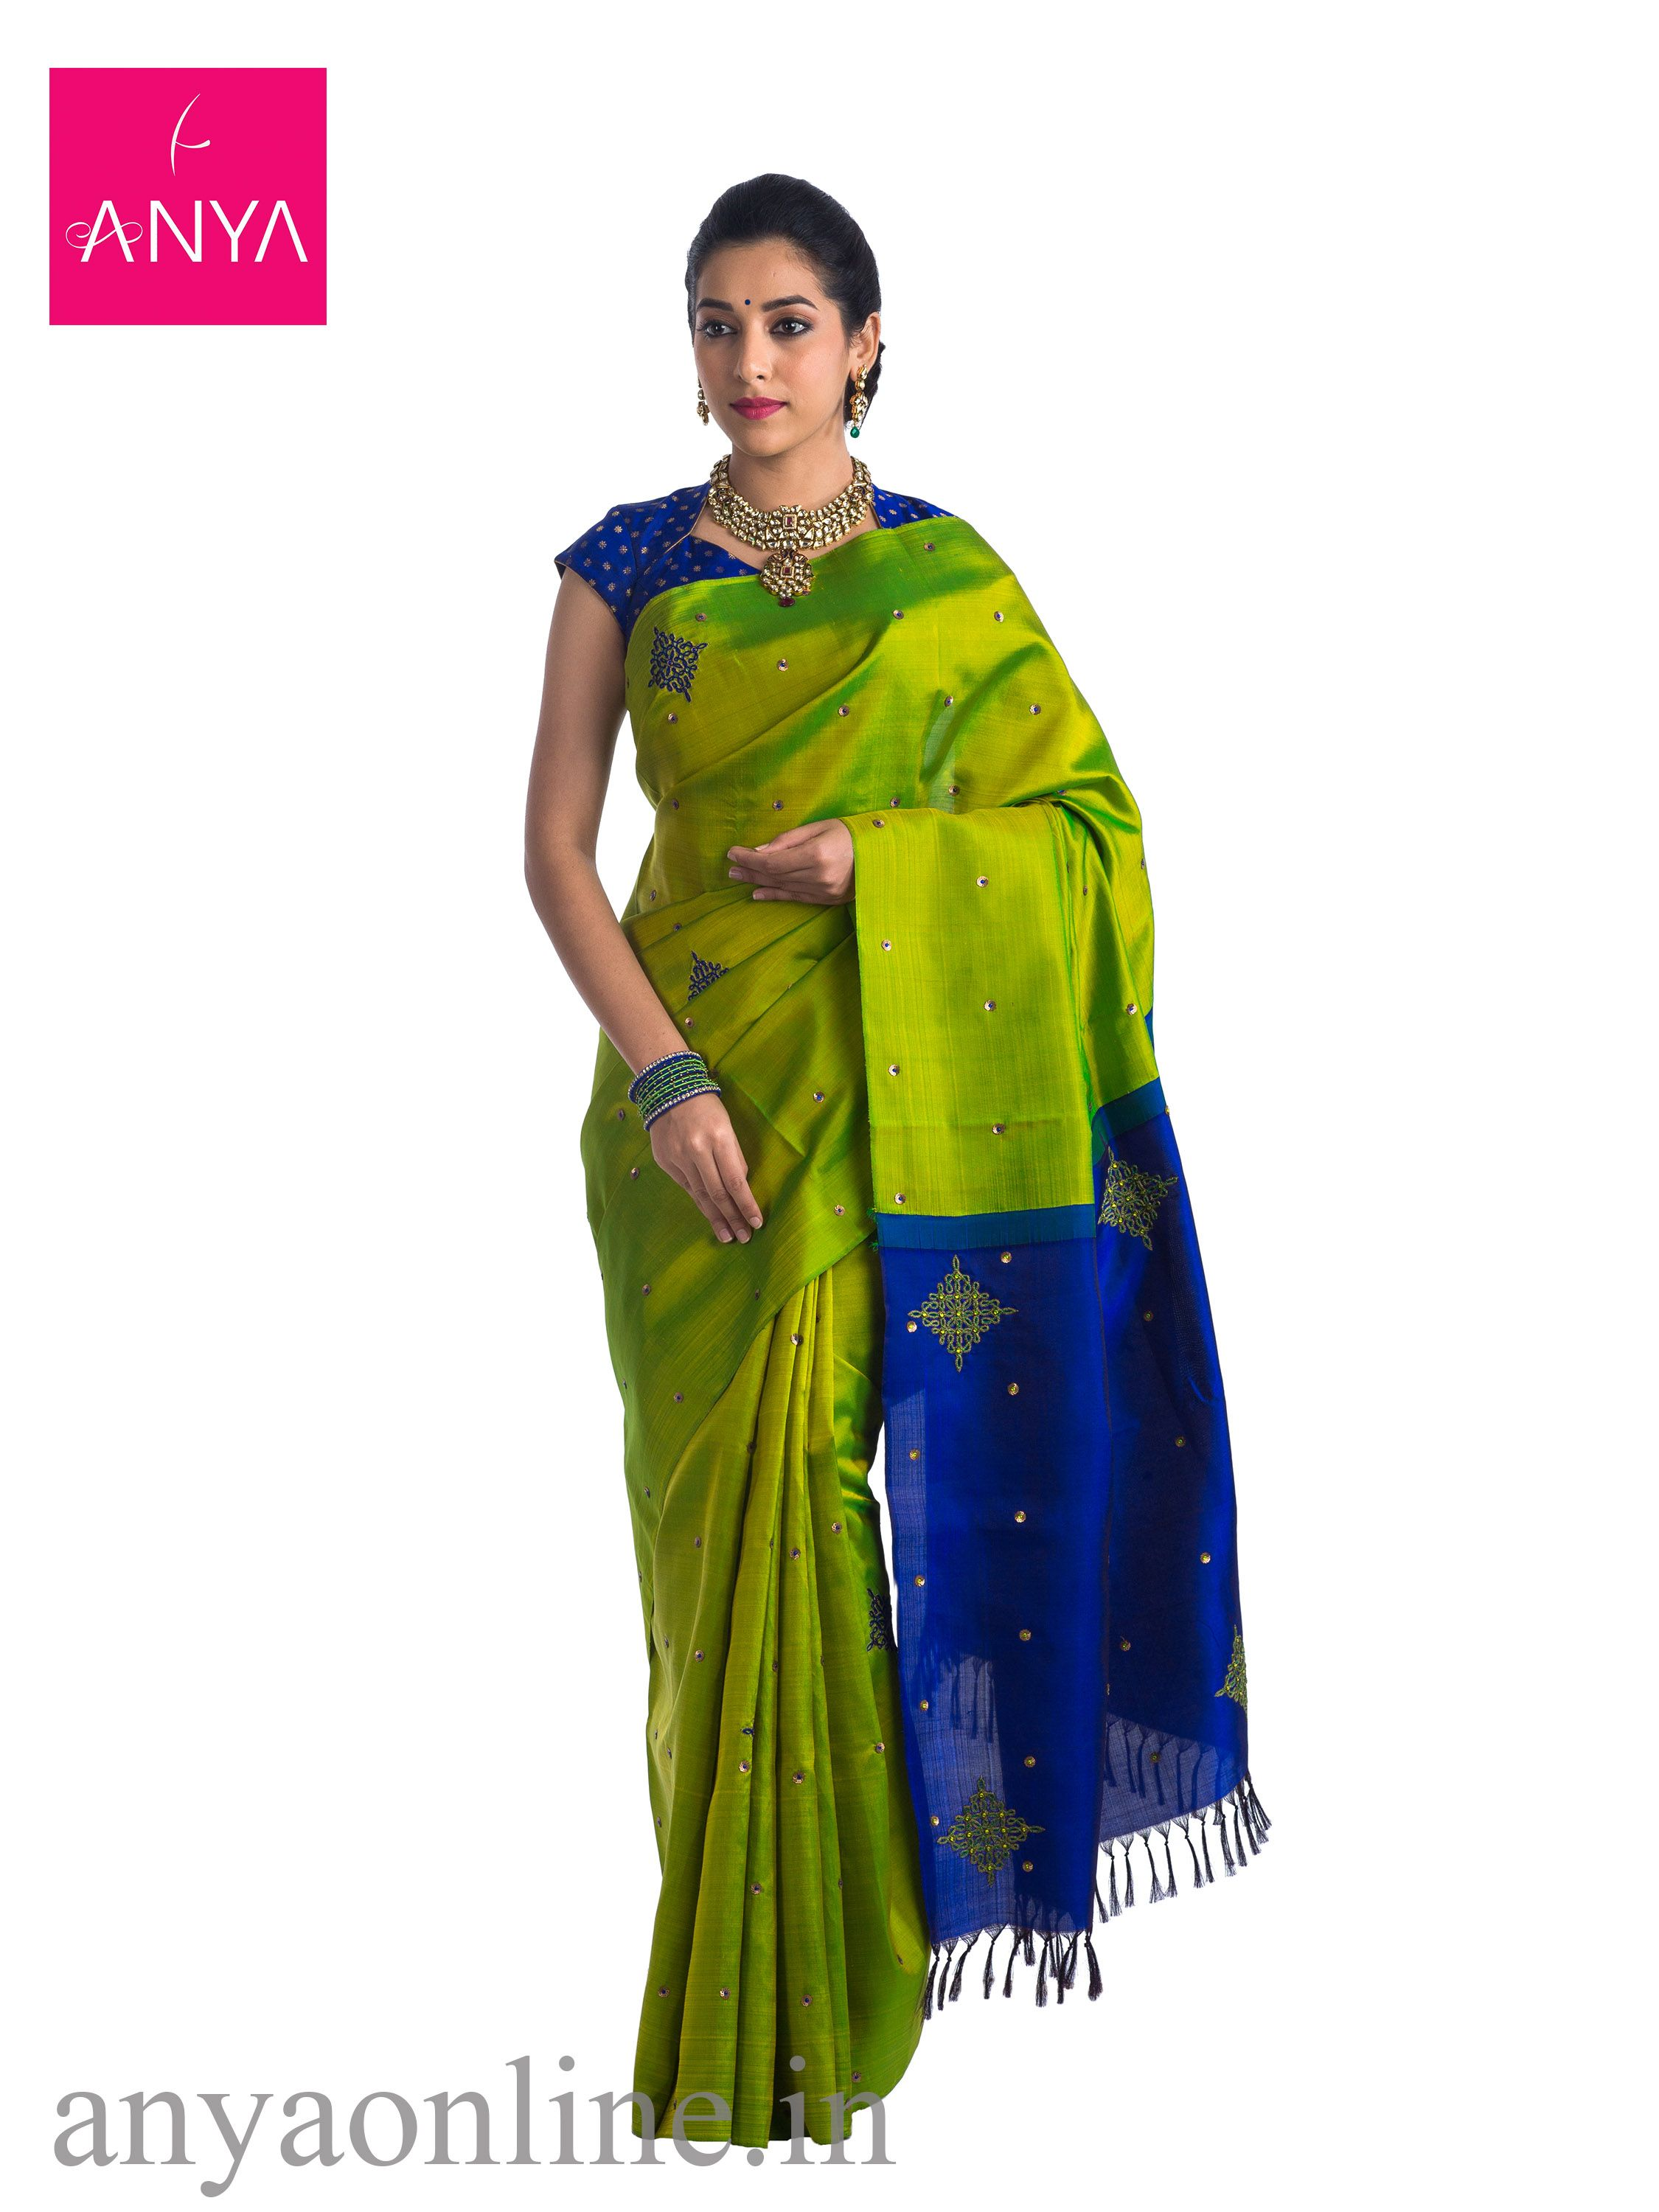 553742c21f2 Anya Boutique provides best collection of Alli green saree with M.s Blue  pallu blouse featuring sequence work and kollam thread weaving Intricate  designs ...